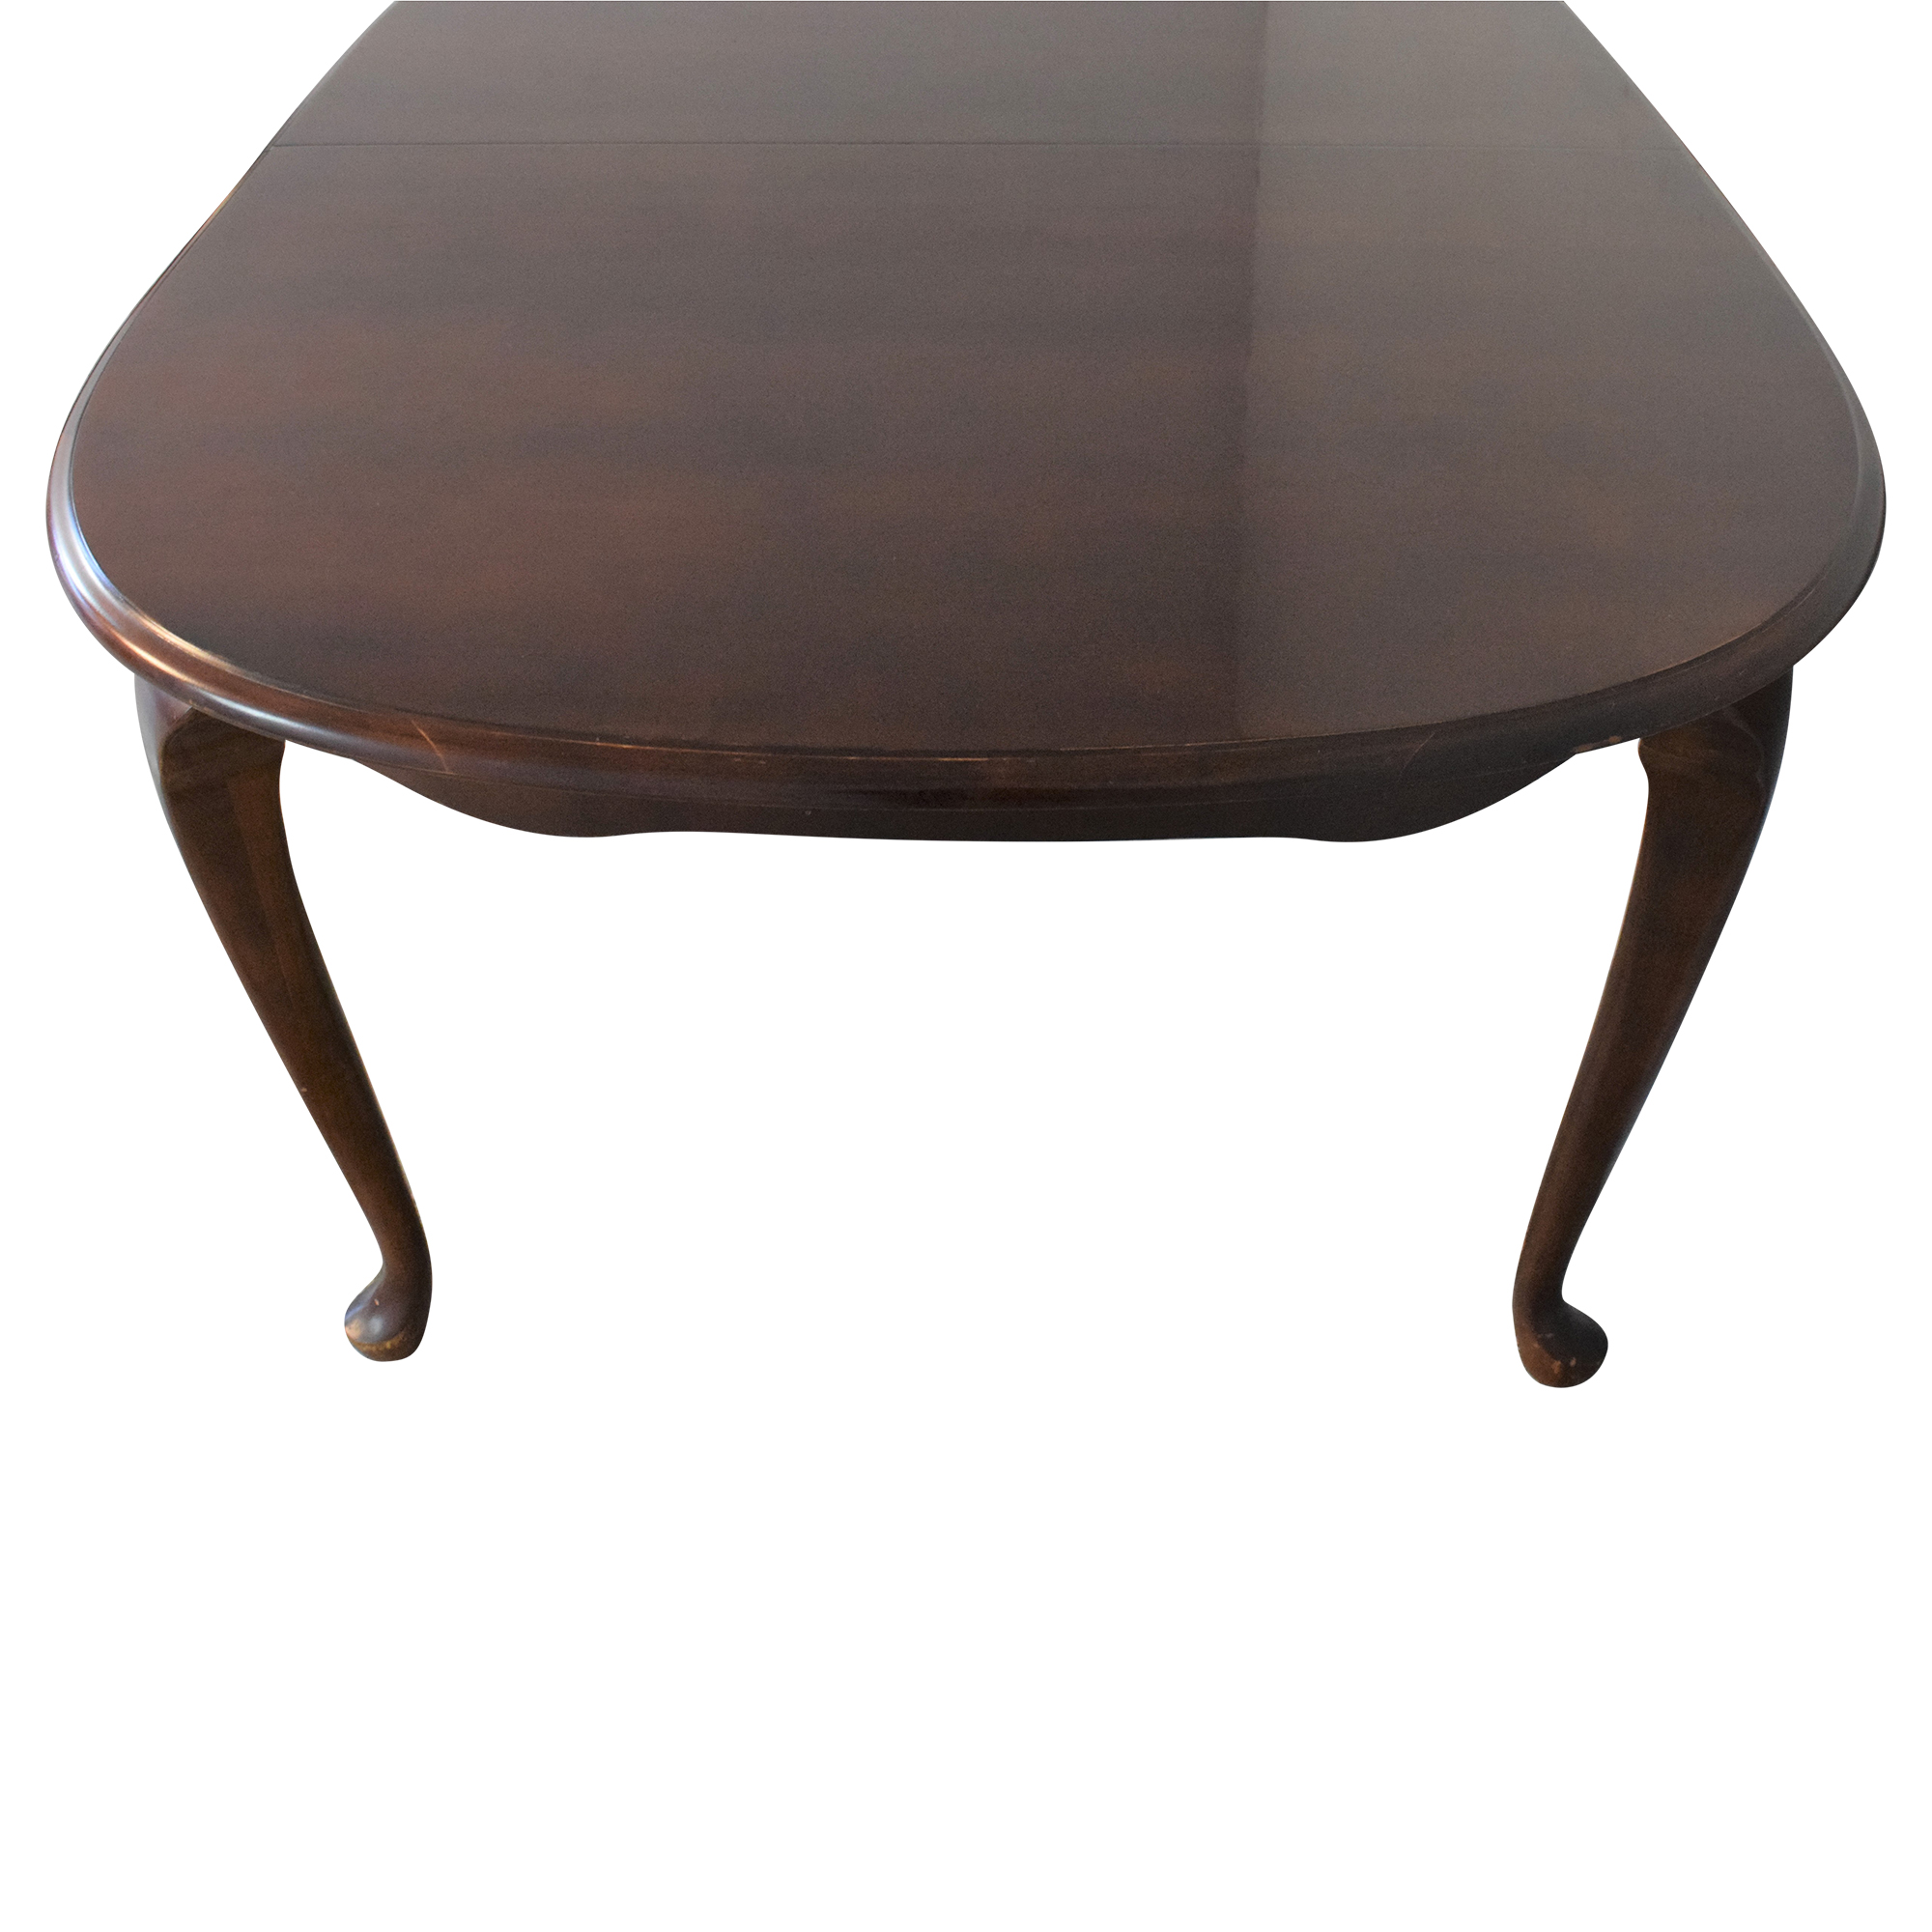 American Drew American Drew Extendable Oval Dining Table for sale